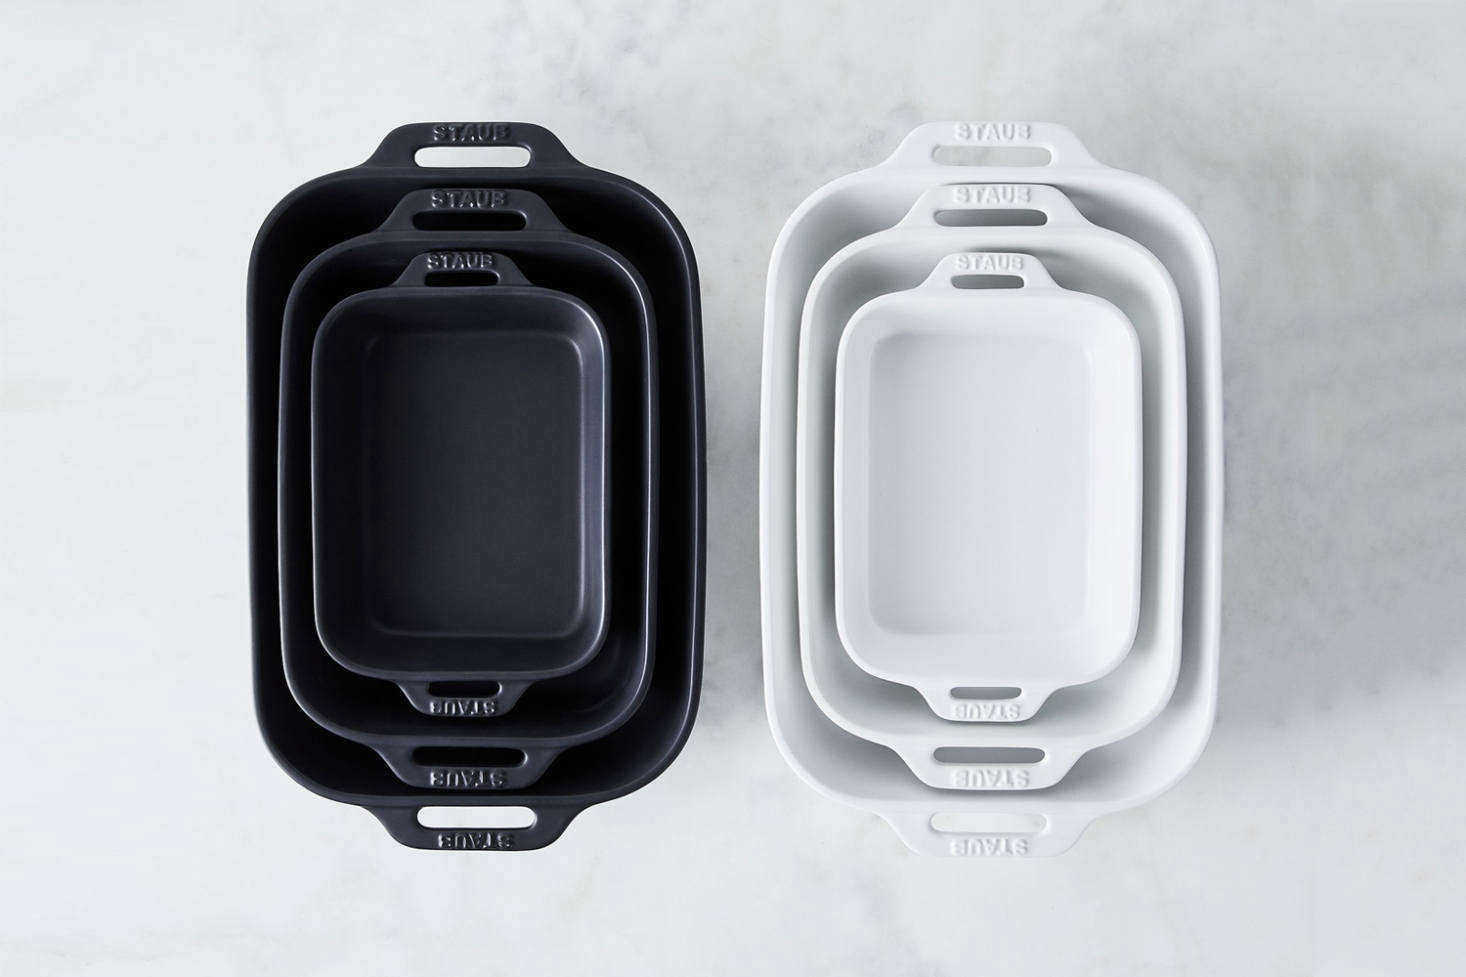 The Staub Matte Ceramic Rectangular Baking Dish, available in Matte Black or Matte White, is $49 for a set of 2 at Food52.